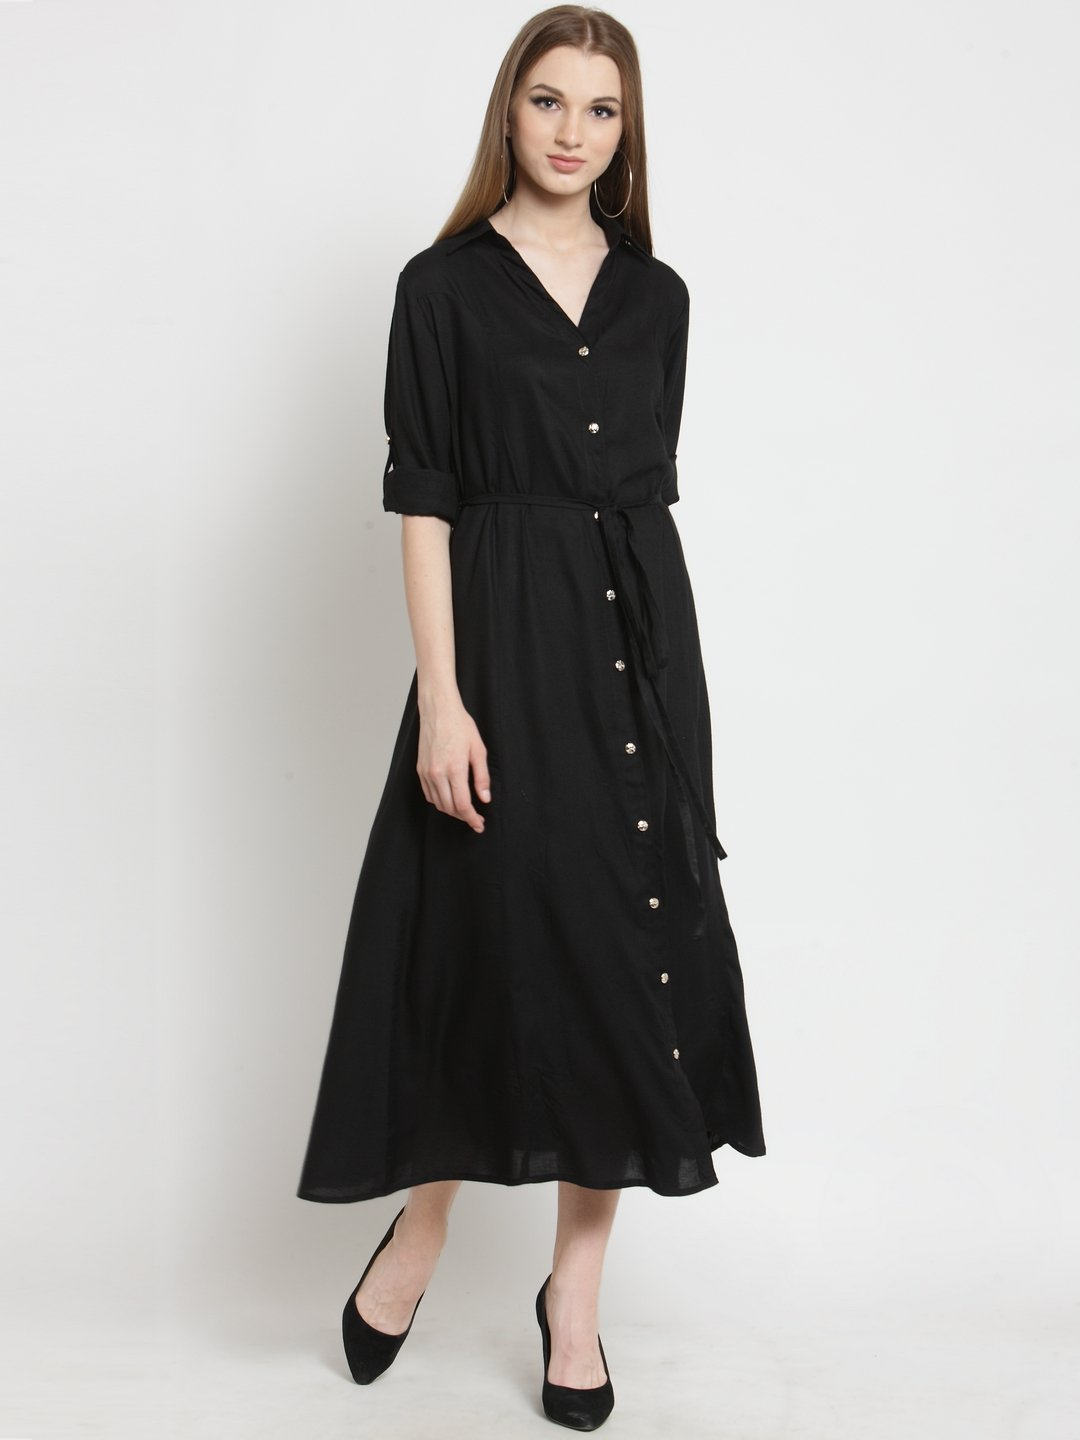 Castle Black Solid Rayon Dress